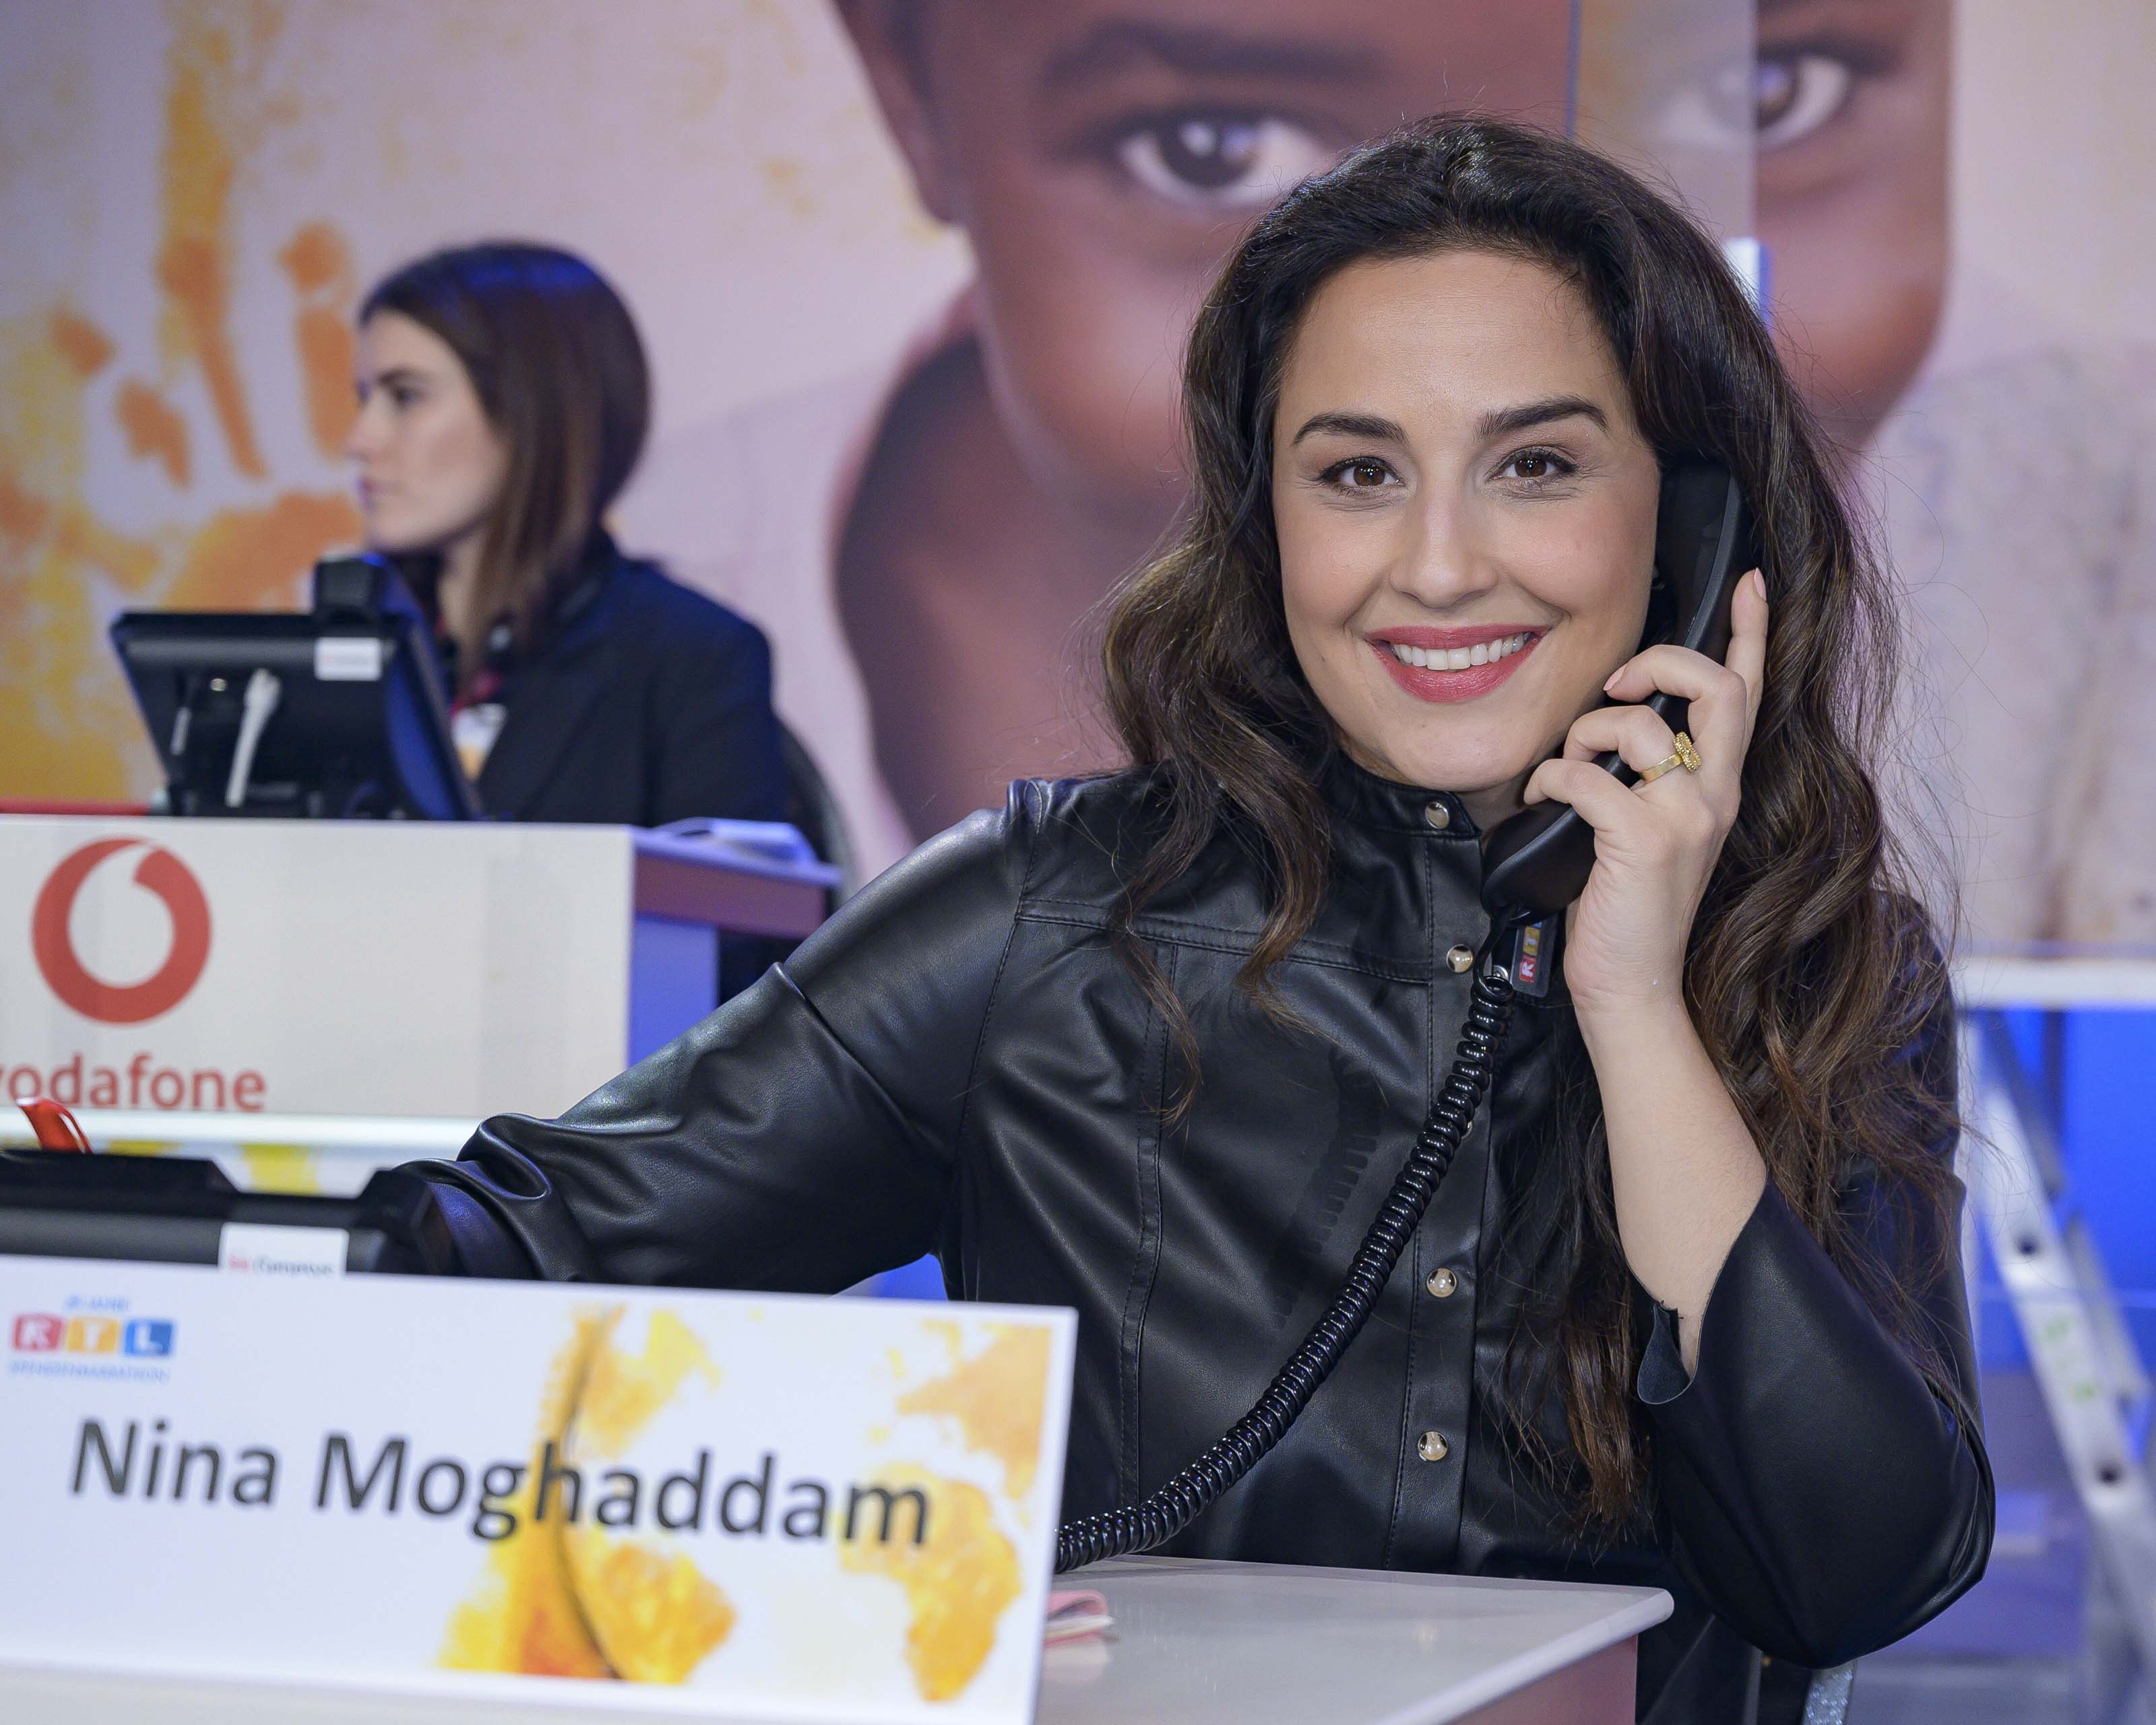 Nina Moghaddam seen at RTL Spendenmarathon